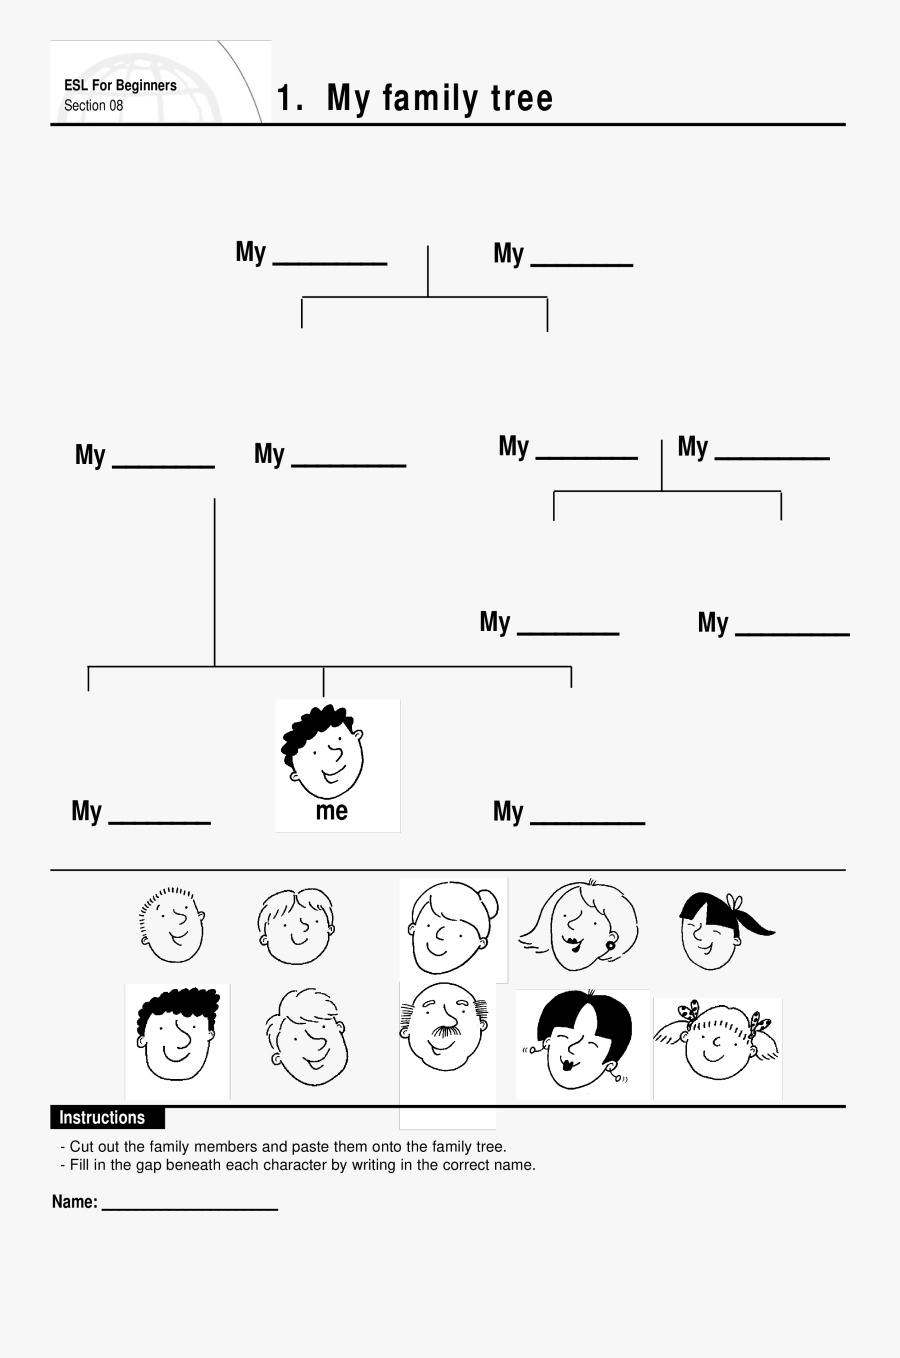 Transparent Family Tree Clipart - Template My Family Tree, Transparent Clipart